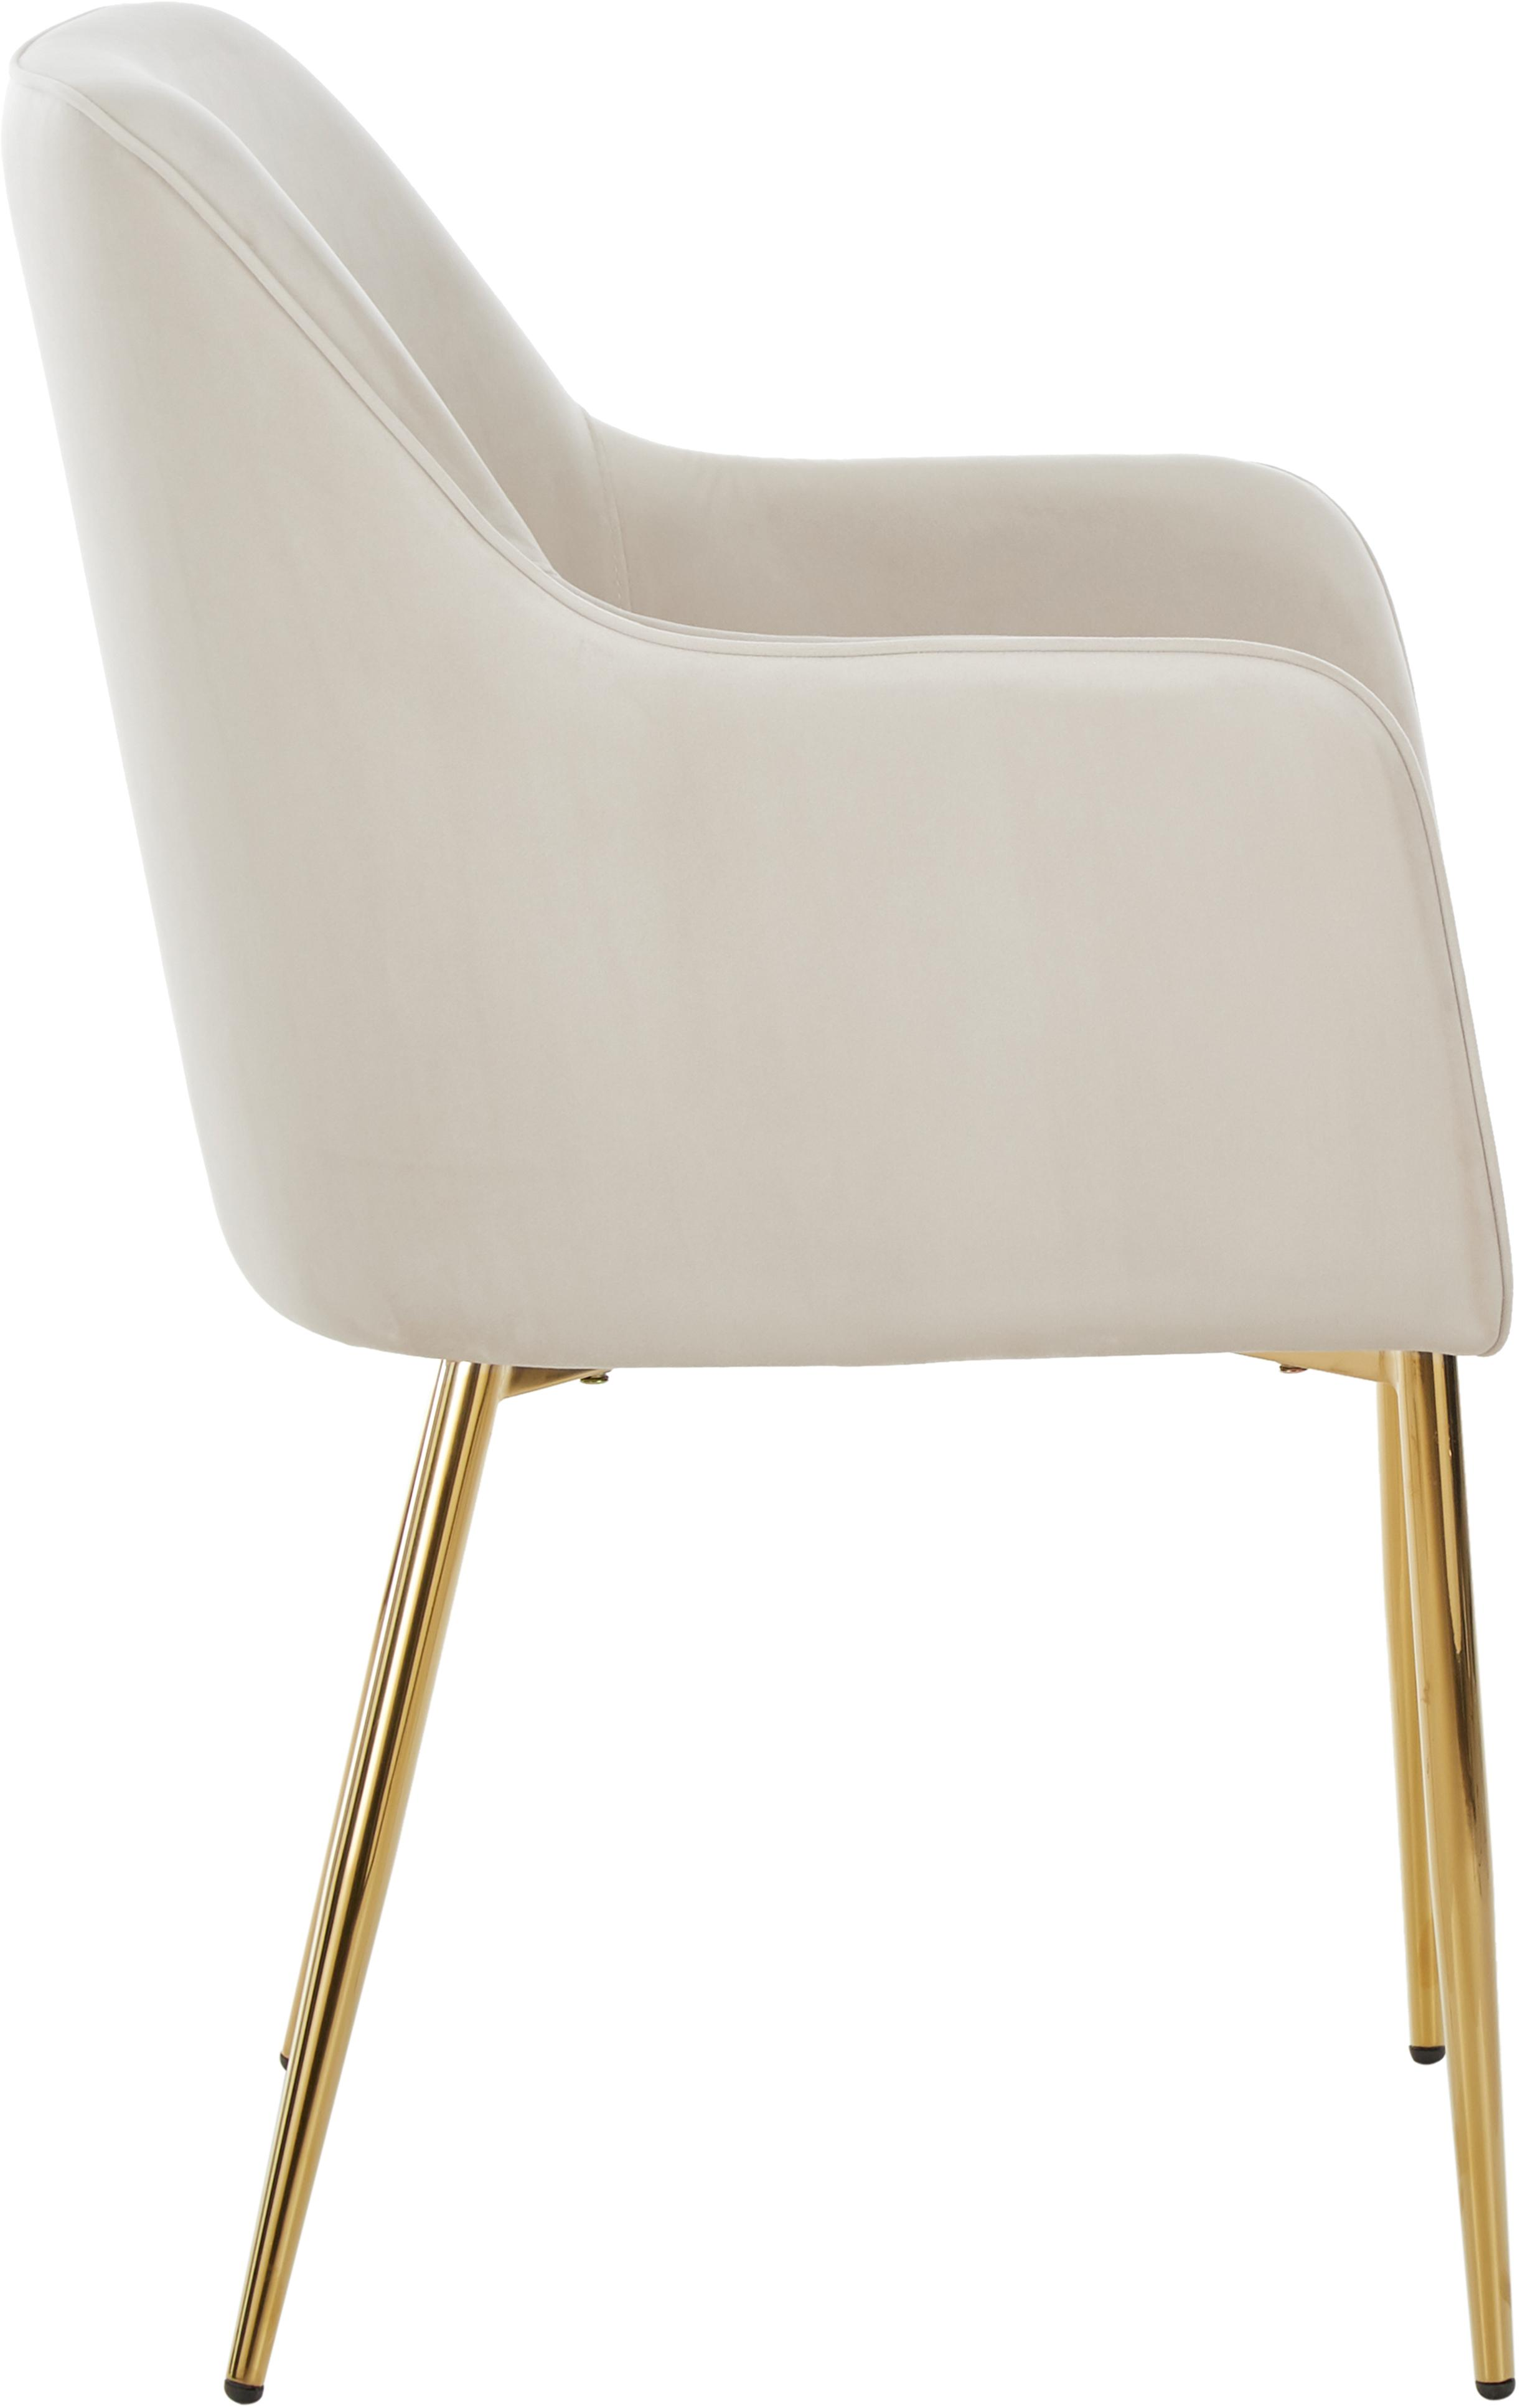 Chaise velours moderne Ava, Velours beige, pieds or